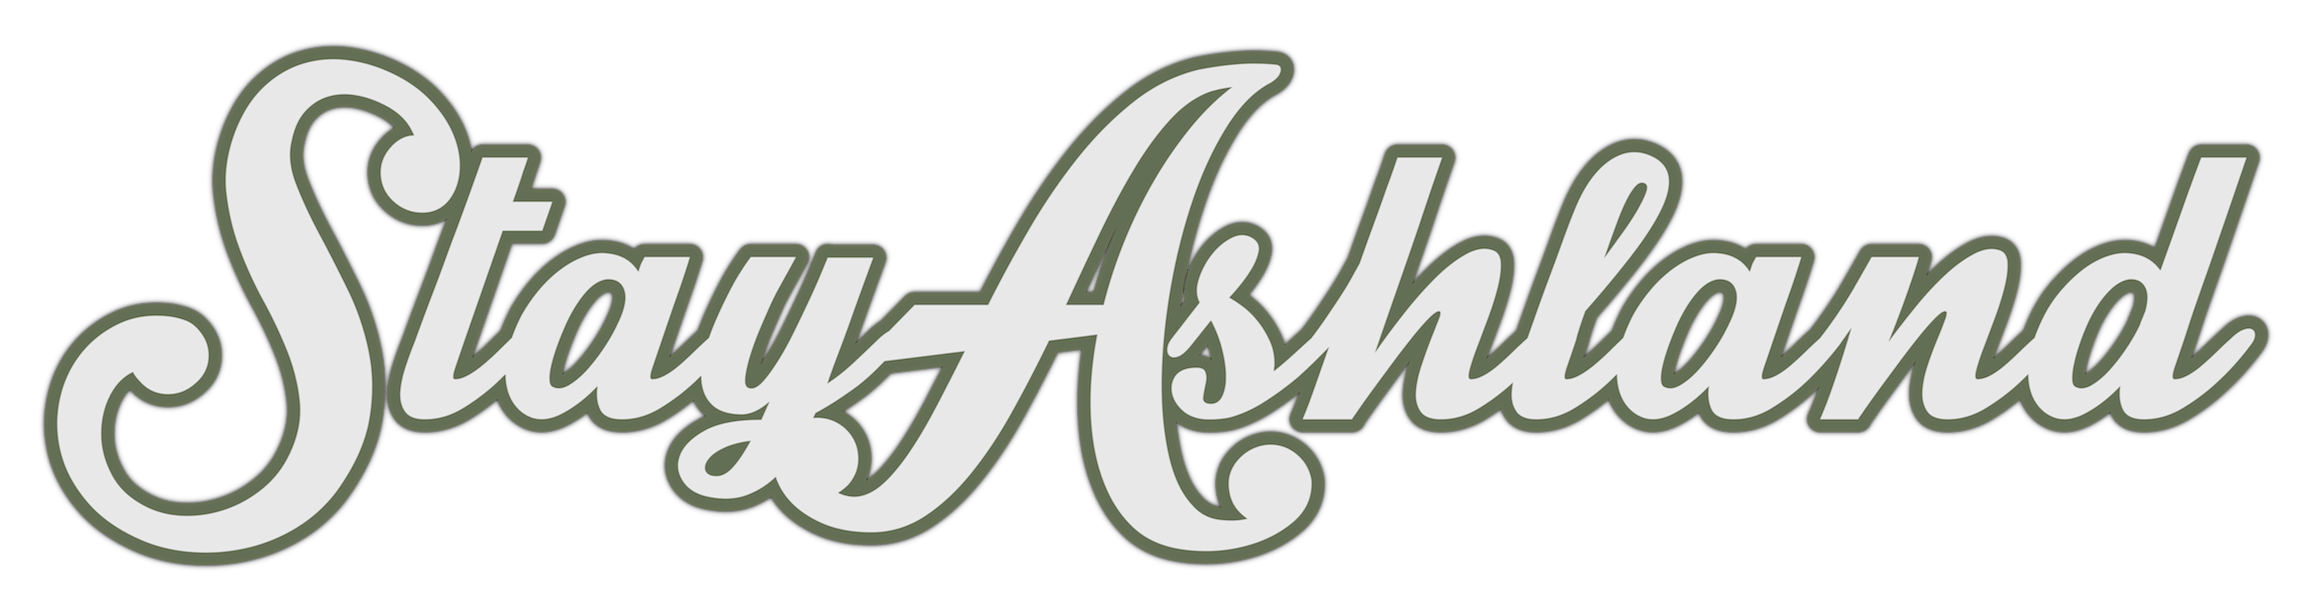 Stay Ashland, Bed & Breakfast Network, Ashland, Oregon